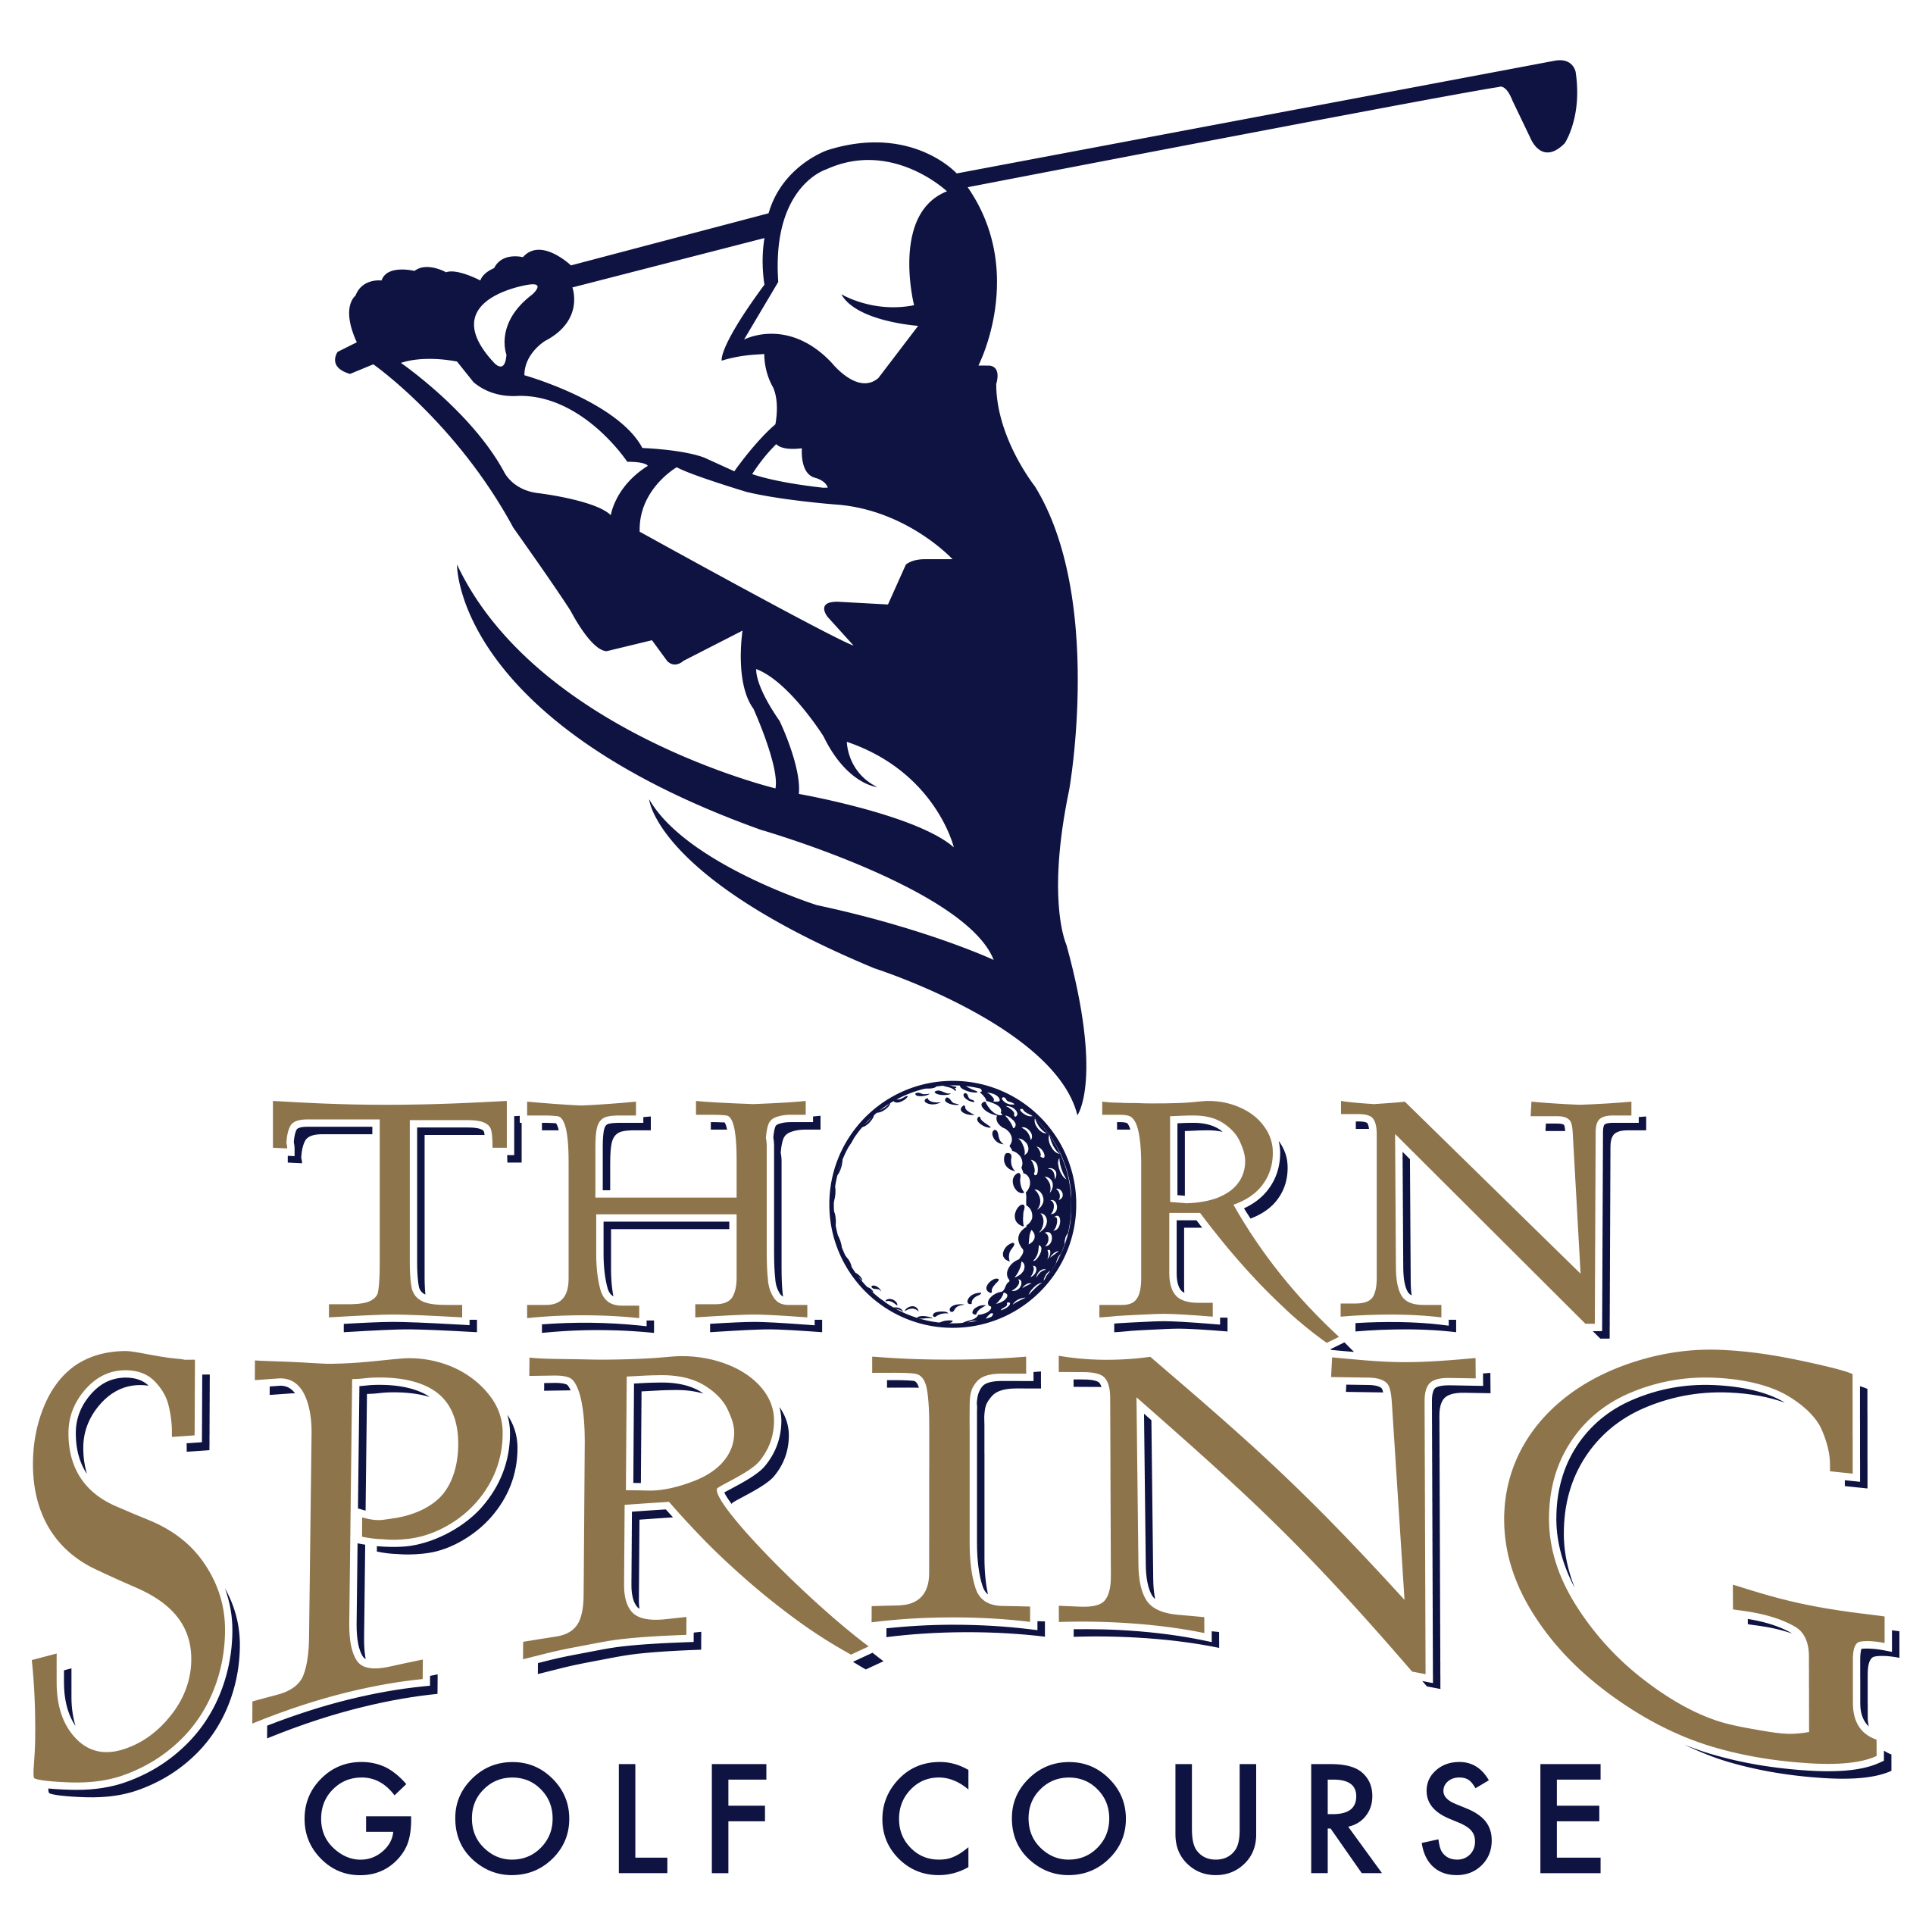 Thronspring Golf Course